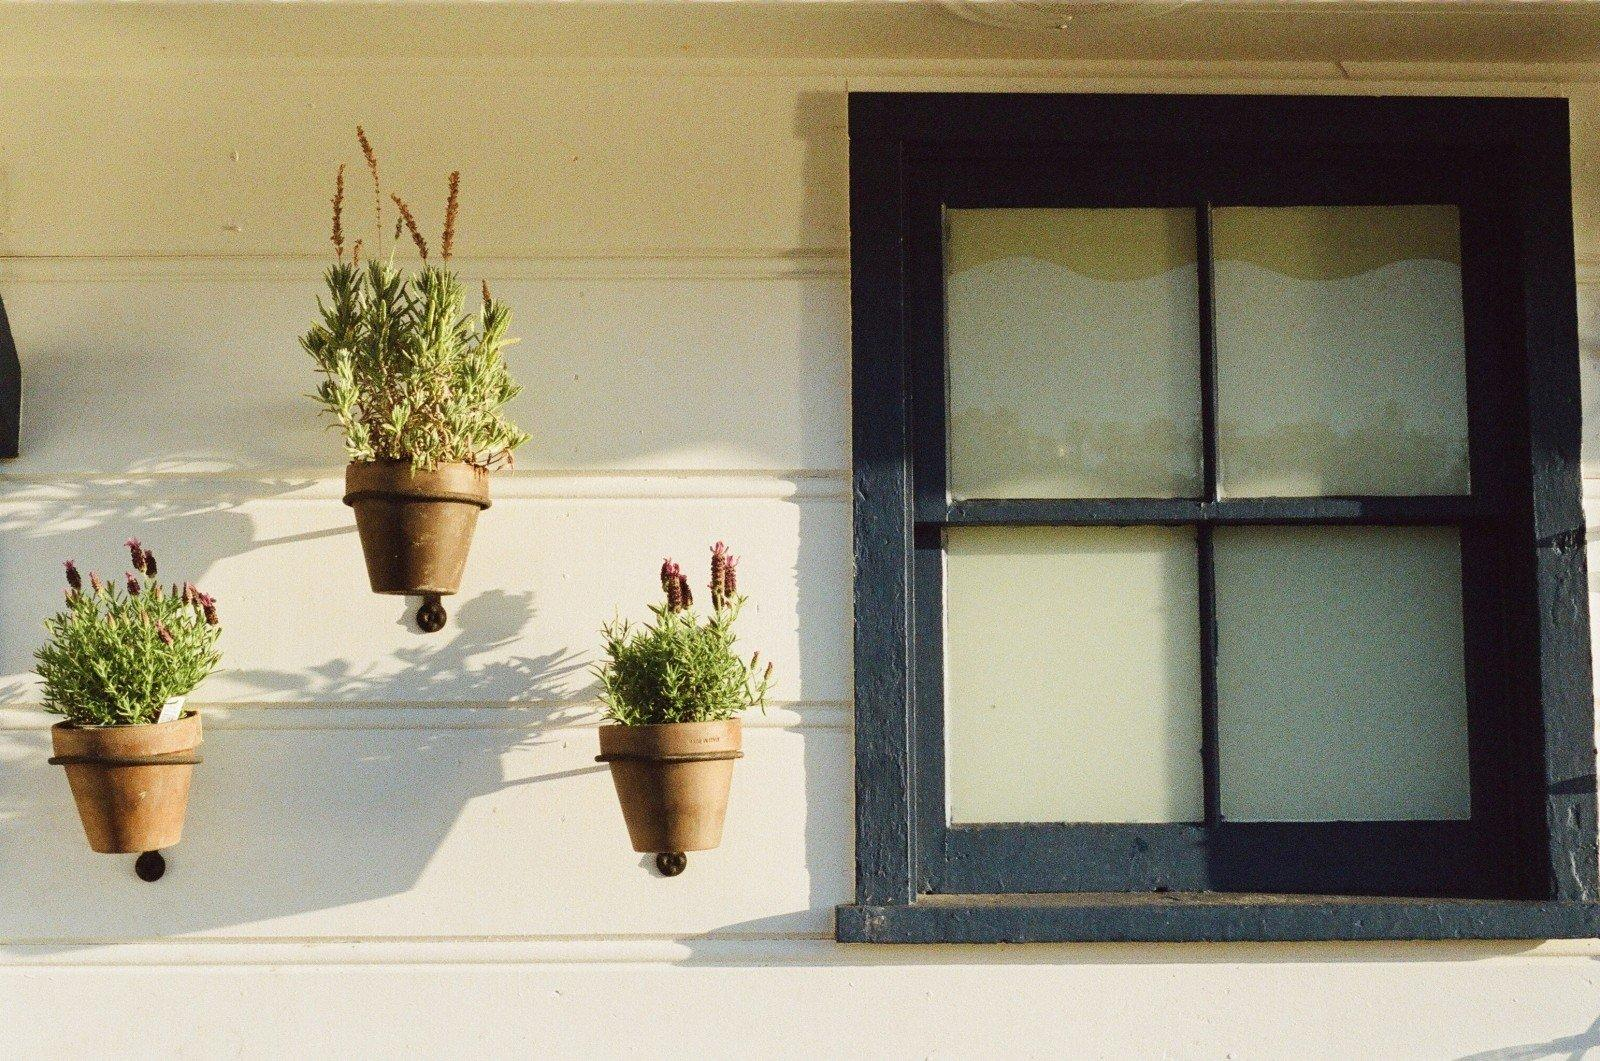 flower pots and window